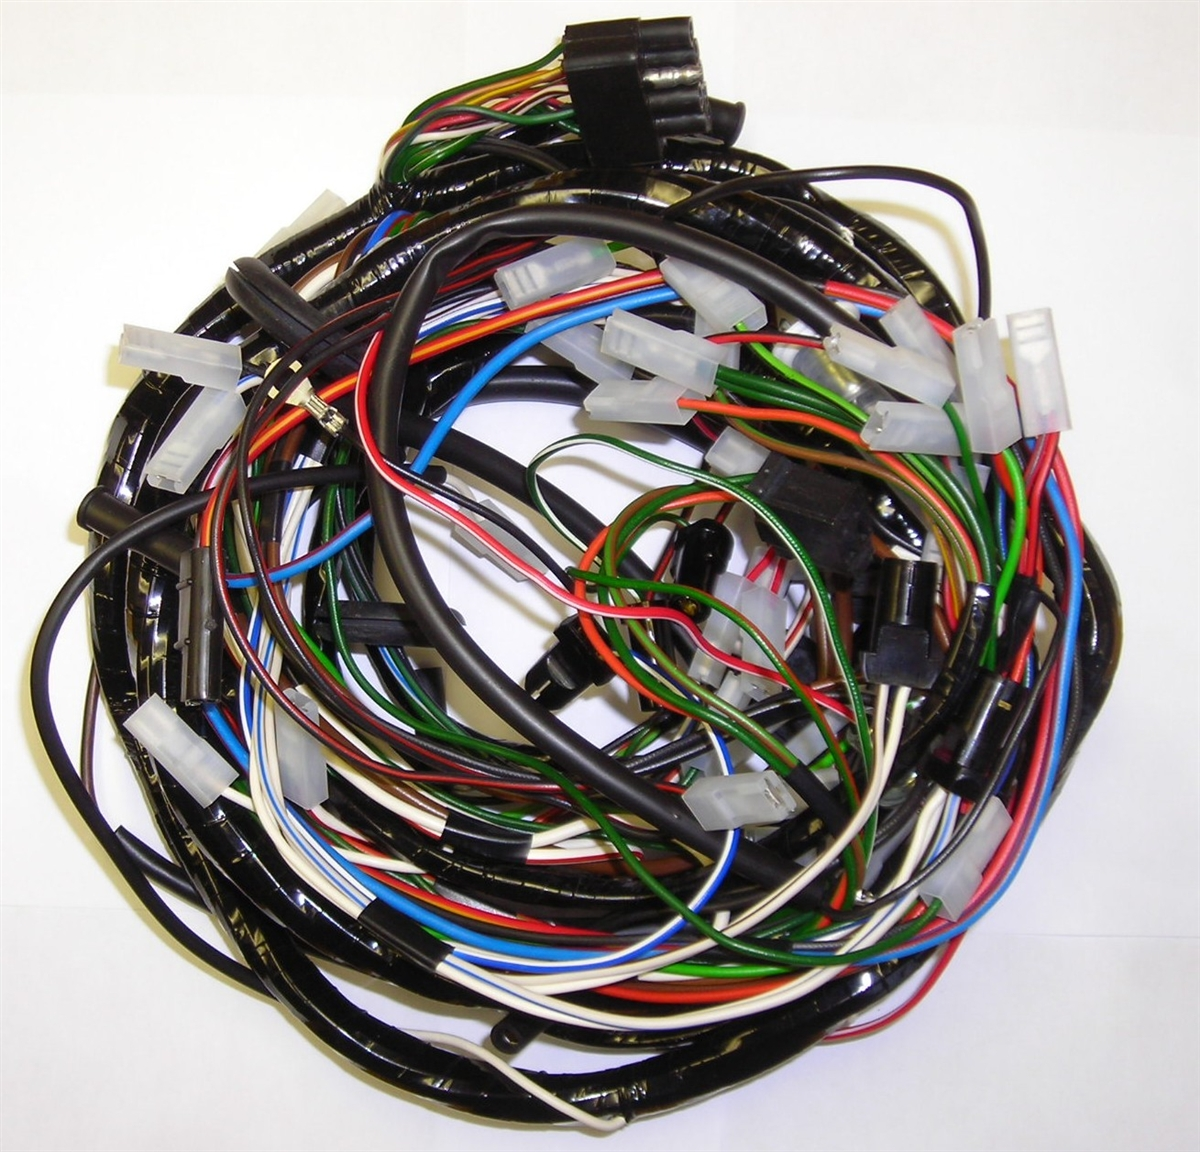 LR306 2?1402646650 rover series 3 main wiring harness Series Speaker Wiring Diagram at edmiracle.co